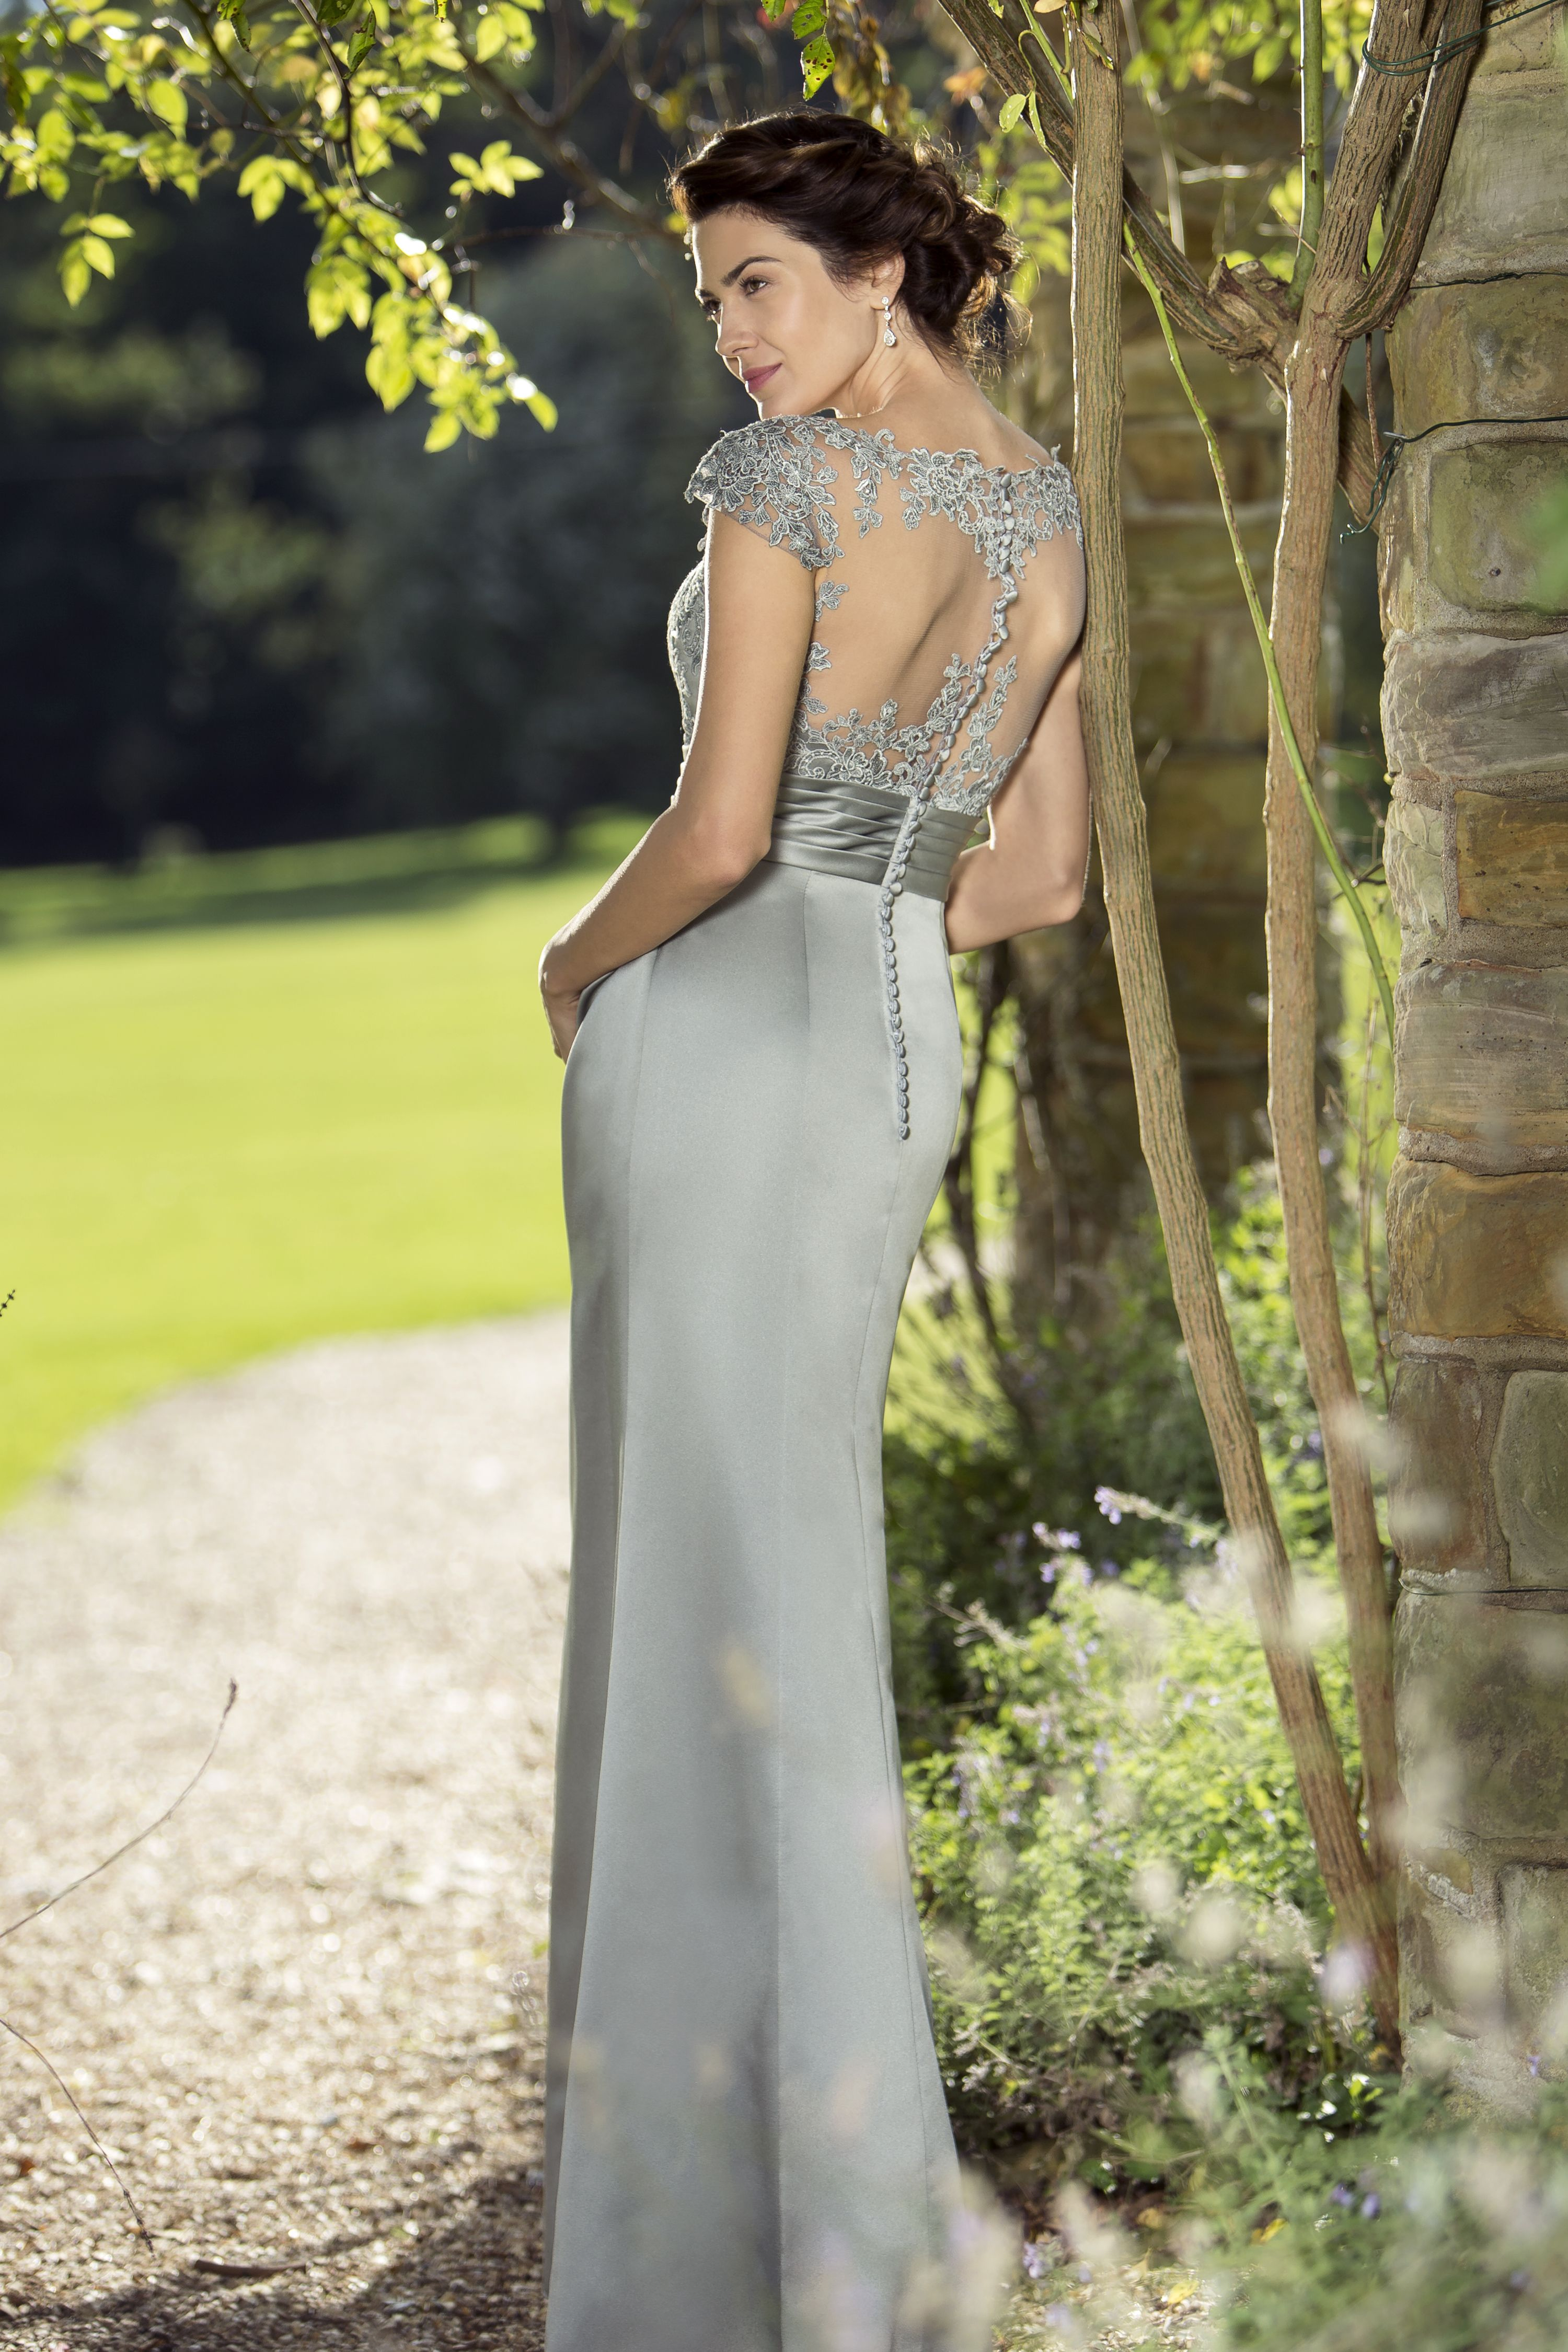 M663 new 2016 collection in stores from november slim and m663 new 2016 collection in stores from november slim and sophisticated satin bridesmaid dress with a sheer tulle boat neckline and pretty beaded lace ombrellifo Image collections